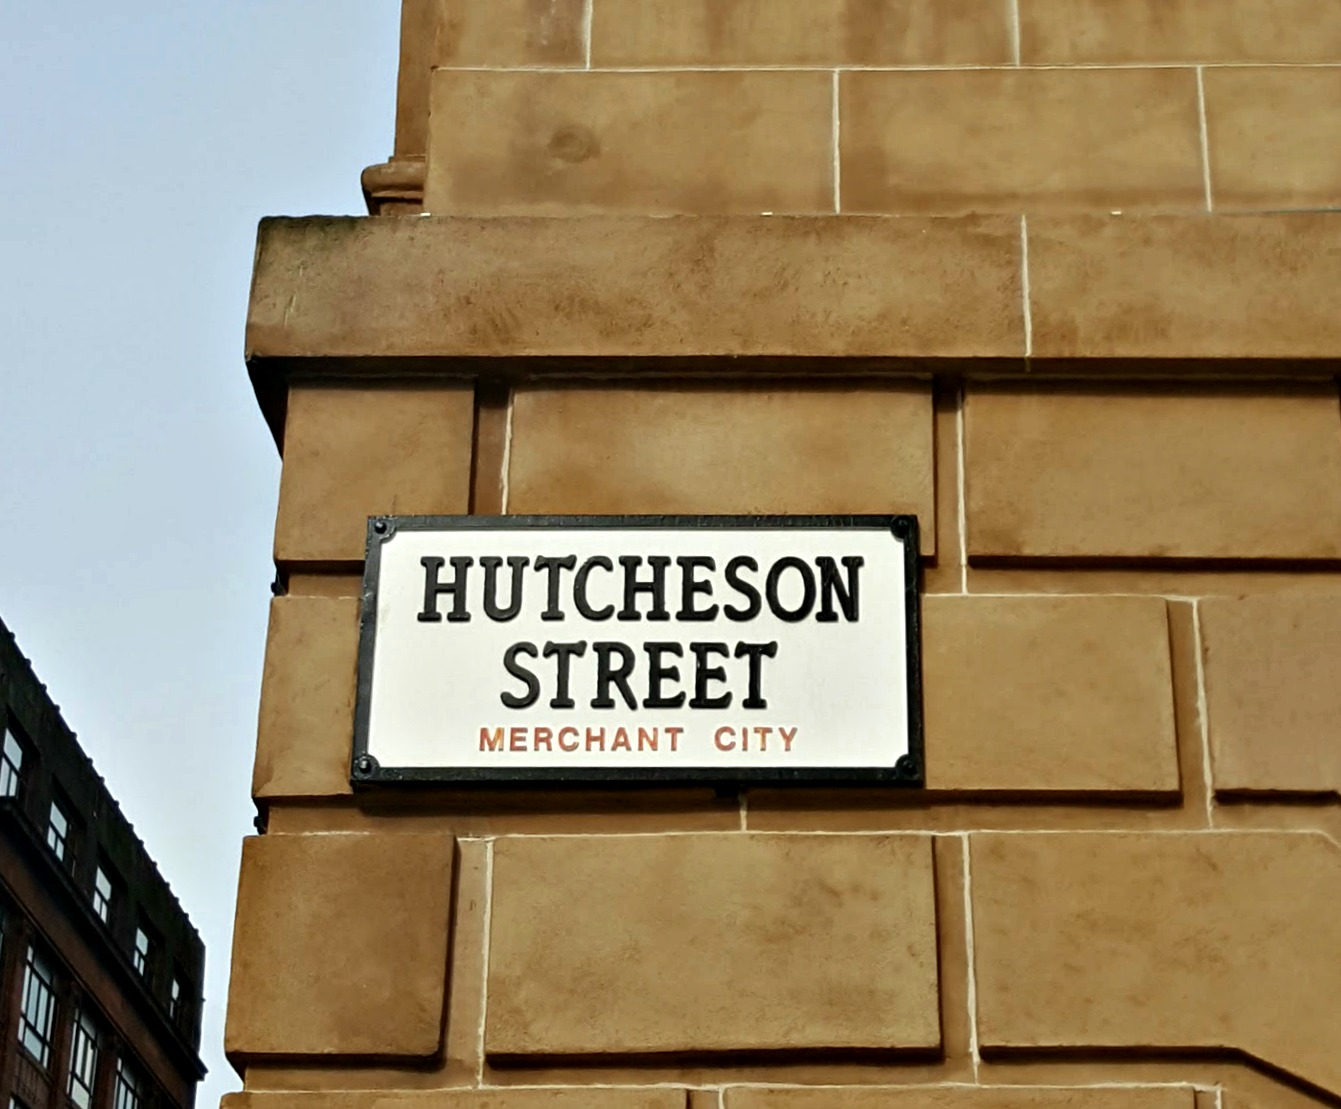 merchant-city-hutcheson-glasgow.jpg